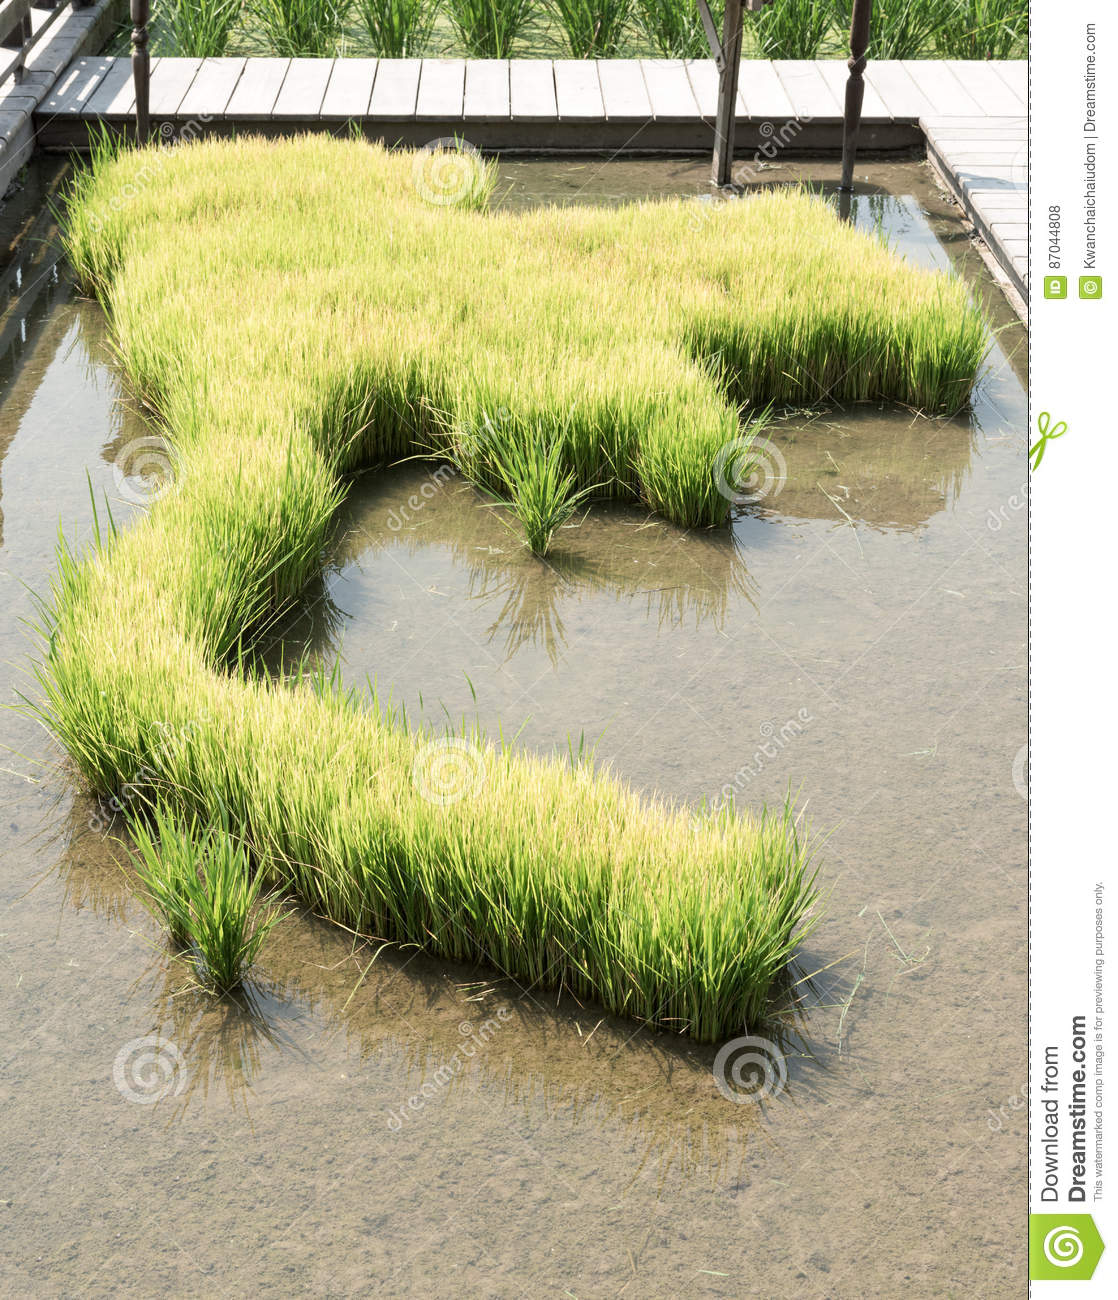 Rice sprouts planting on Thailand map